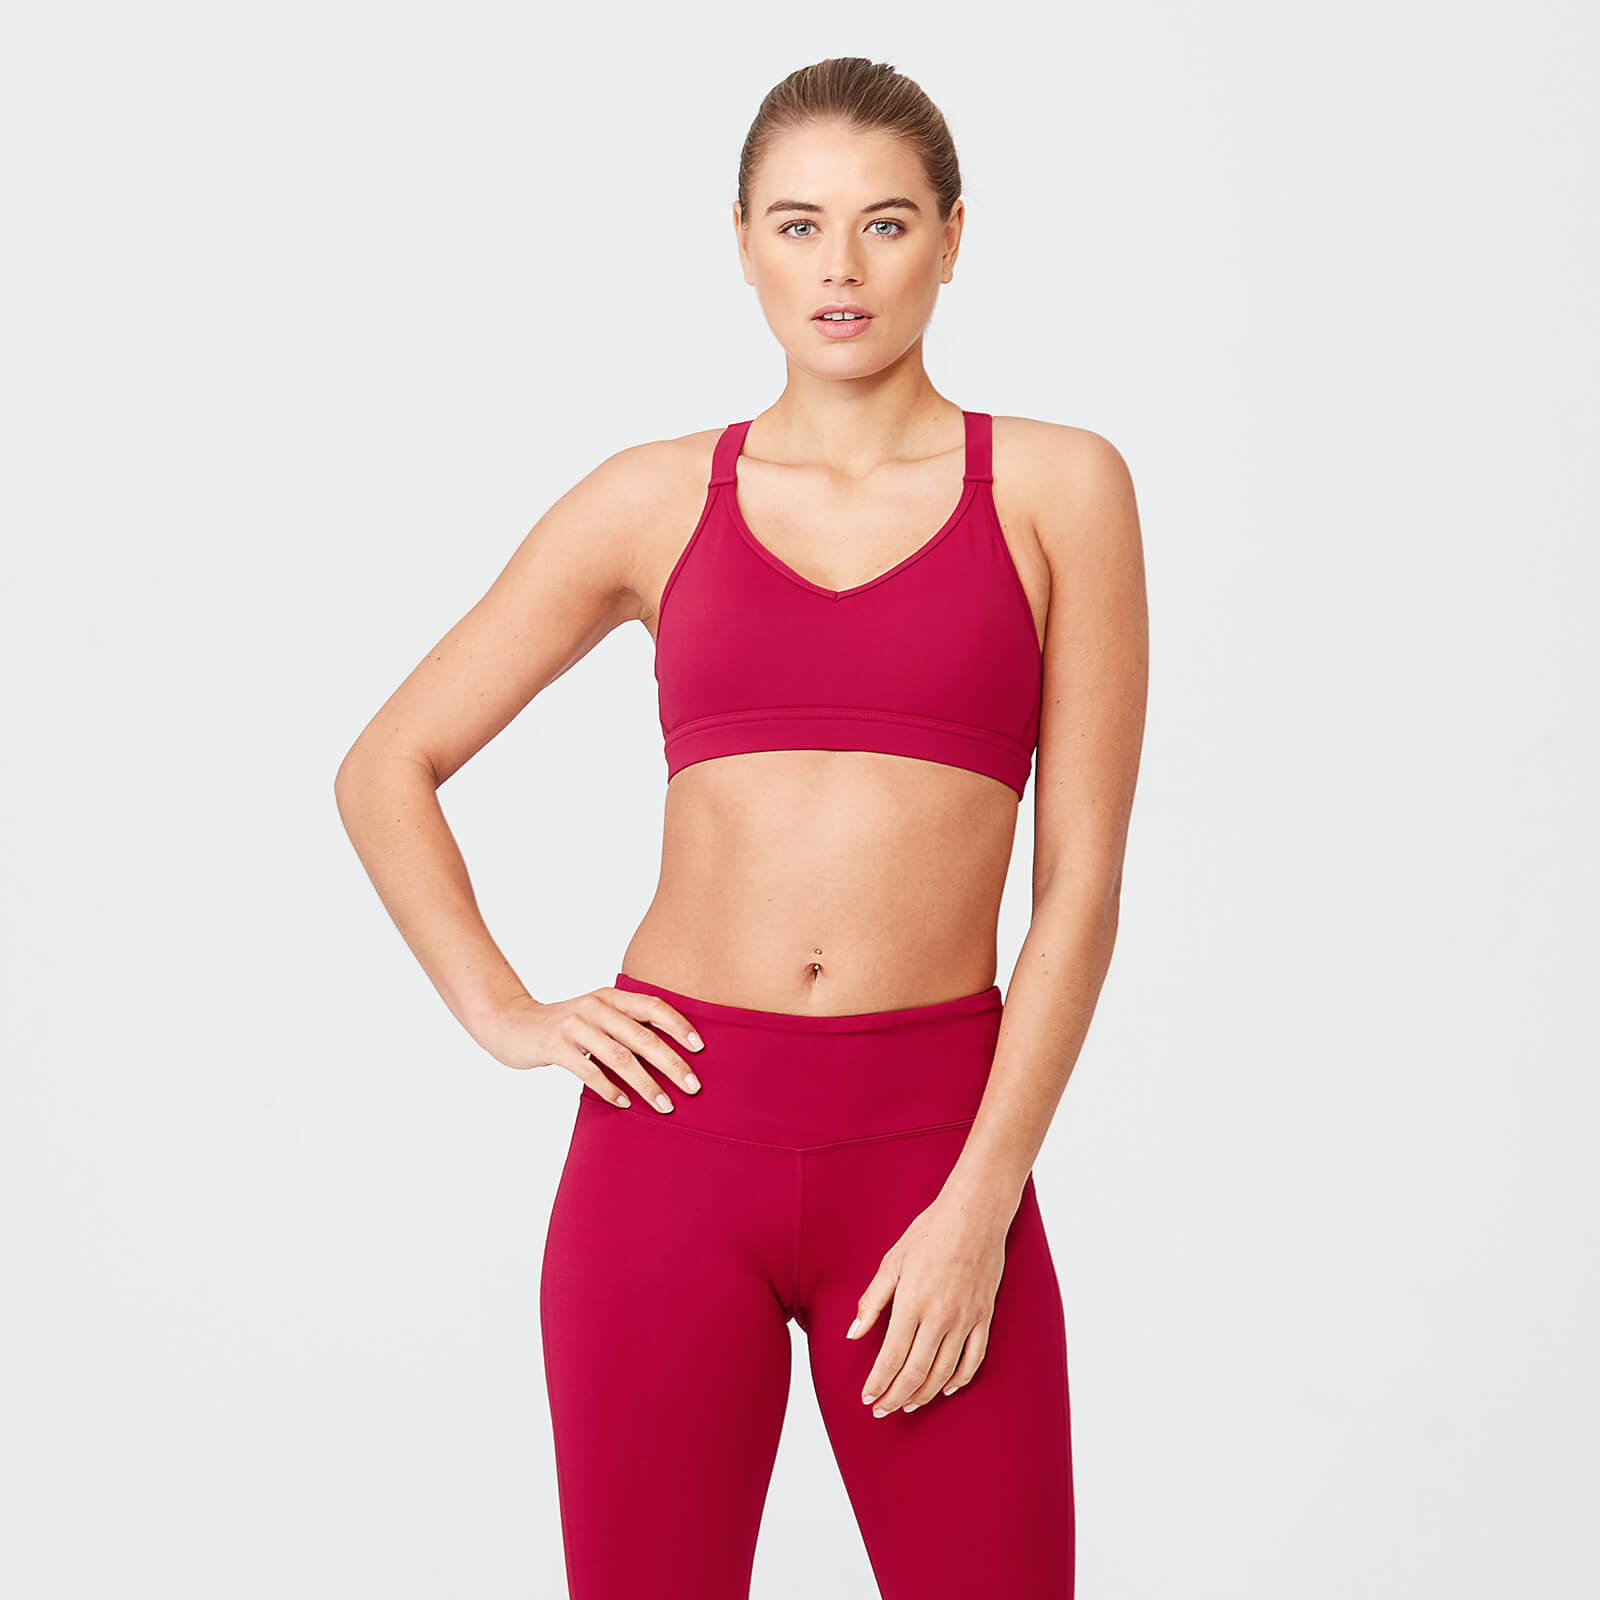 Myprotein Classic Heartbeat Sports Bra - Red - XS